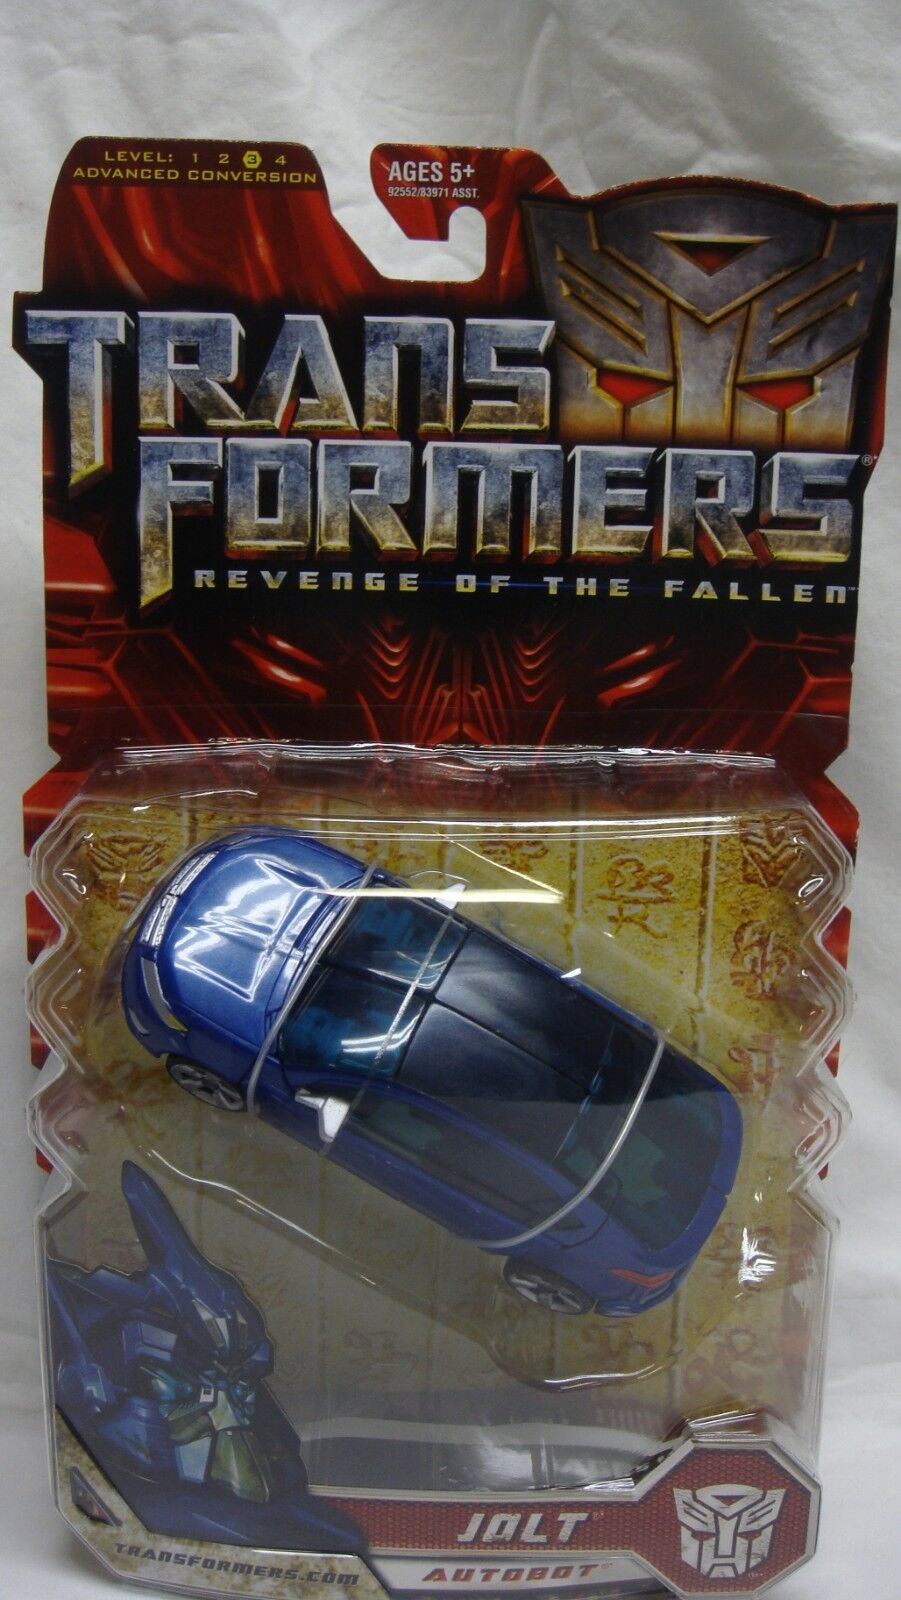 TRANSFORMERS REVENGE OF THE FALLEN redF AUTOBOT JOLT DELUXE CLASS NEW SEALED